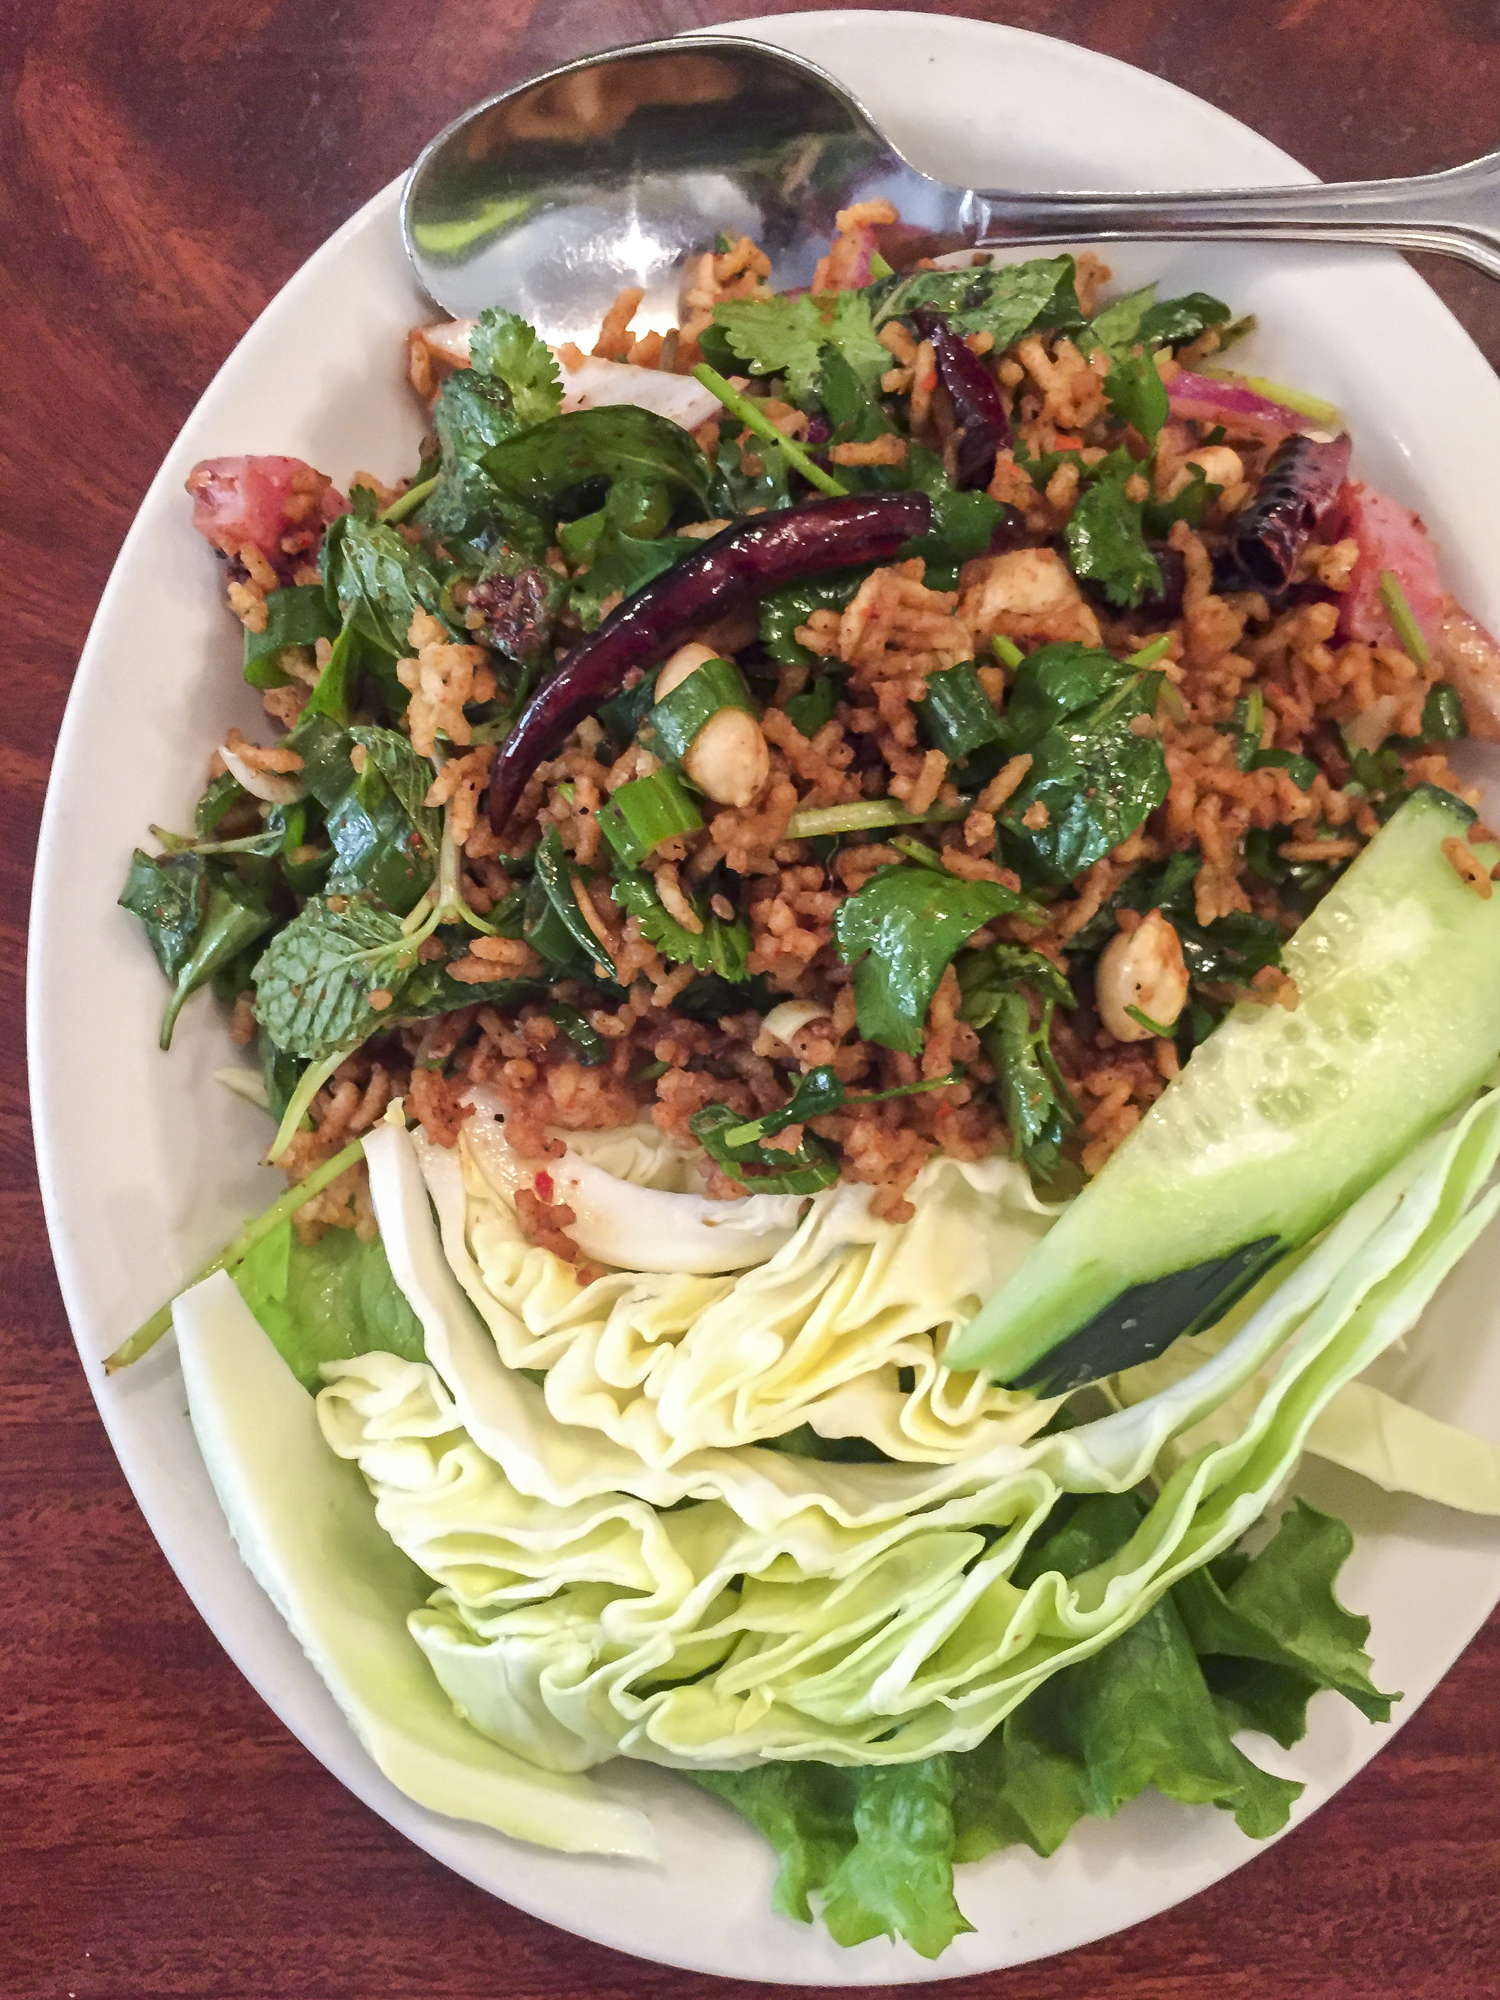 A close up image of a plate of Nam Kao Tod